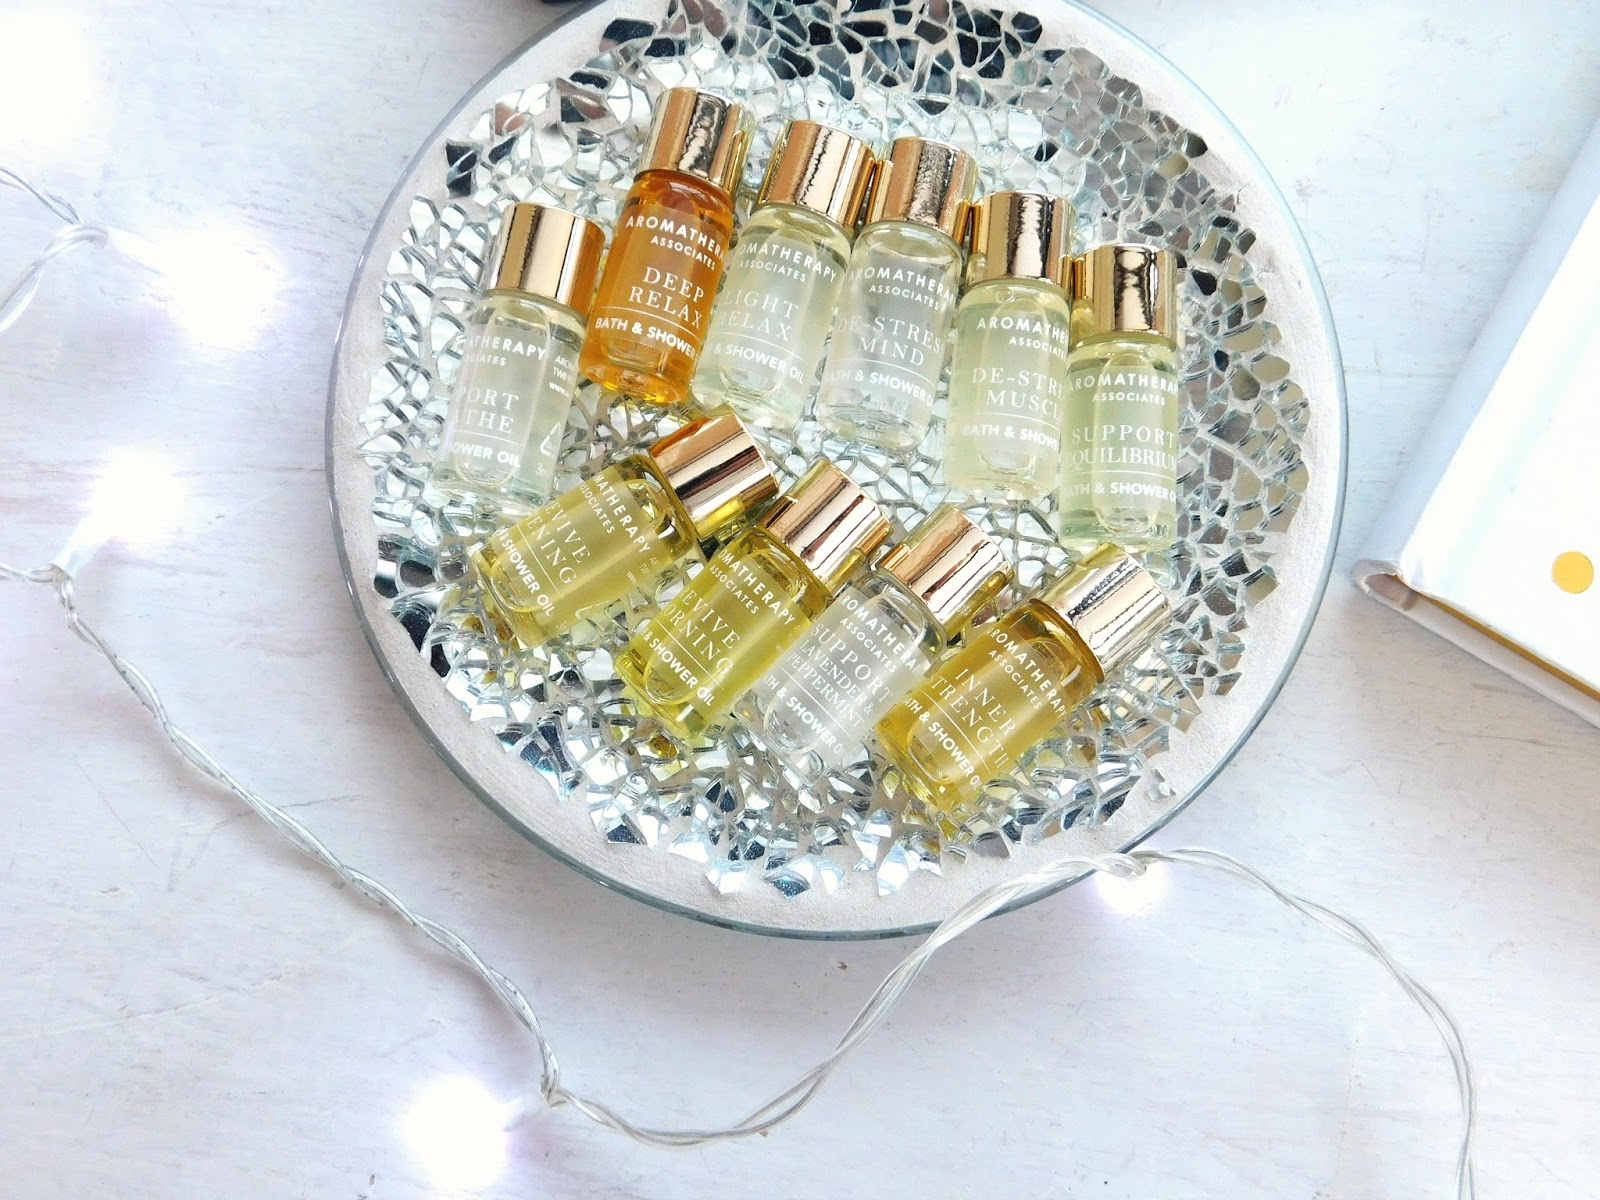 Aromatherapy Bath Oils Review, Relaxing Spa Products, Pamper Products, Aromatherapy